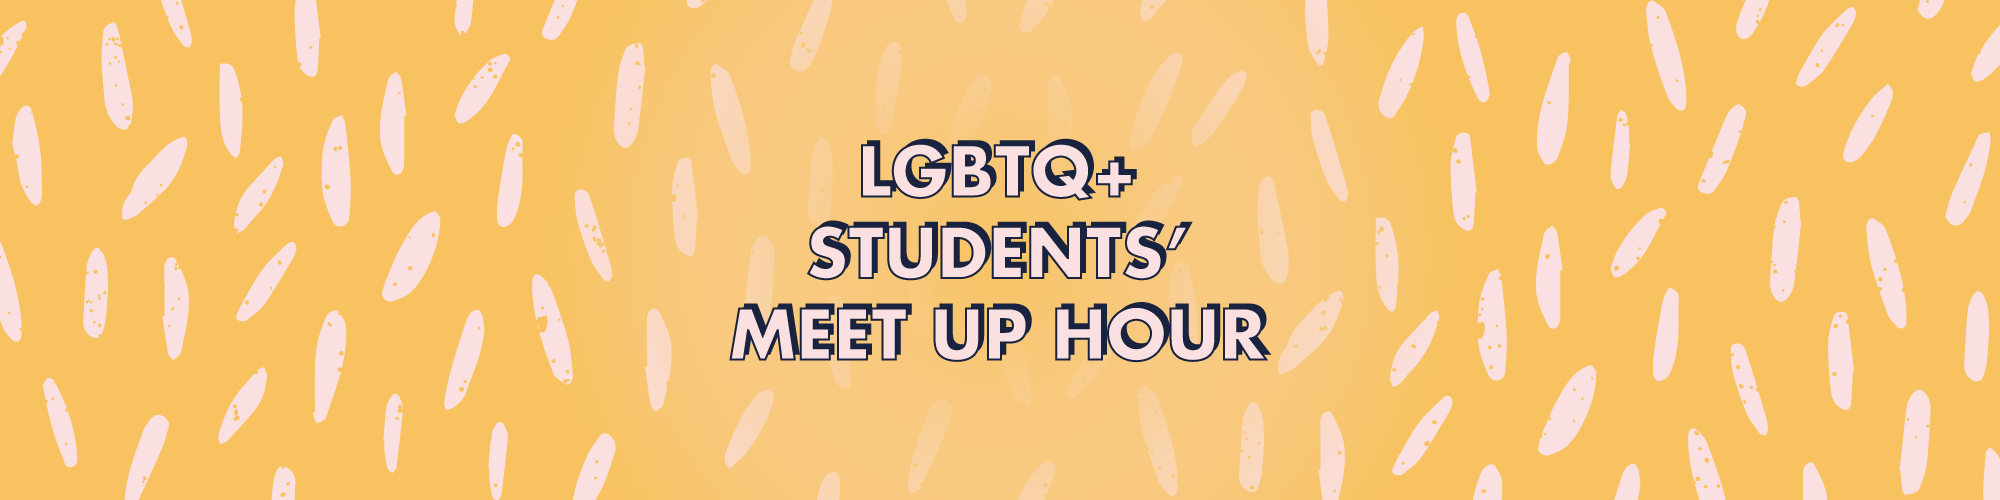 LGBTQ+ Students' Meet Up Hour